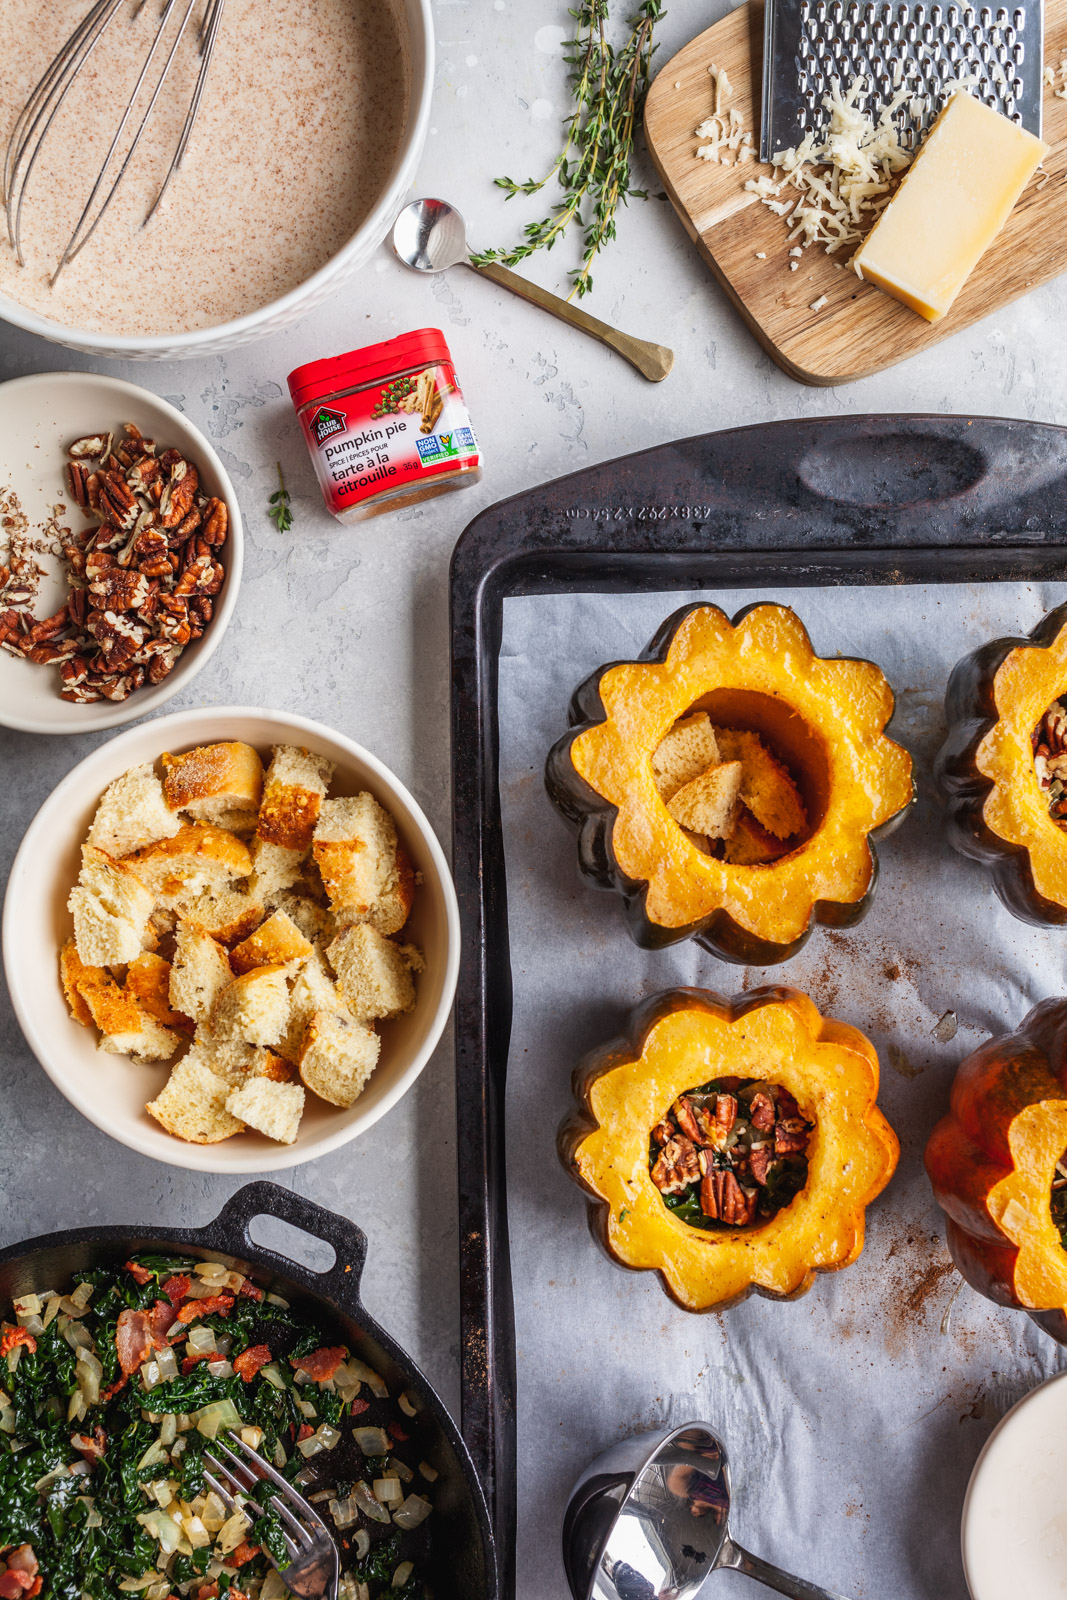 Stuffed Acorn Squash With Bacon And Kale Bread Pudding